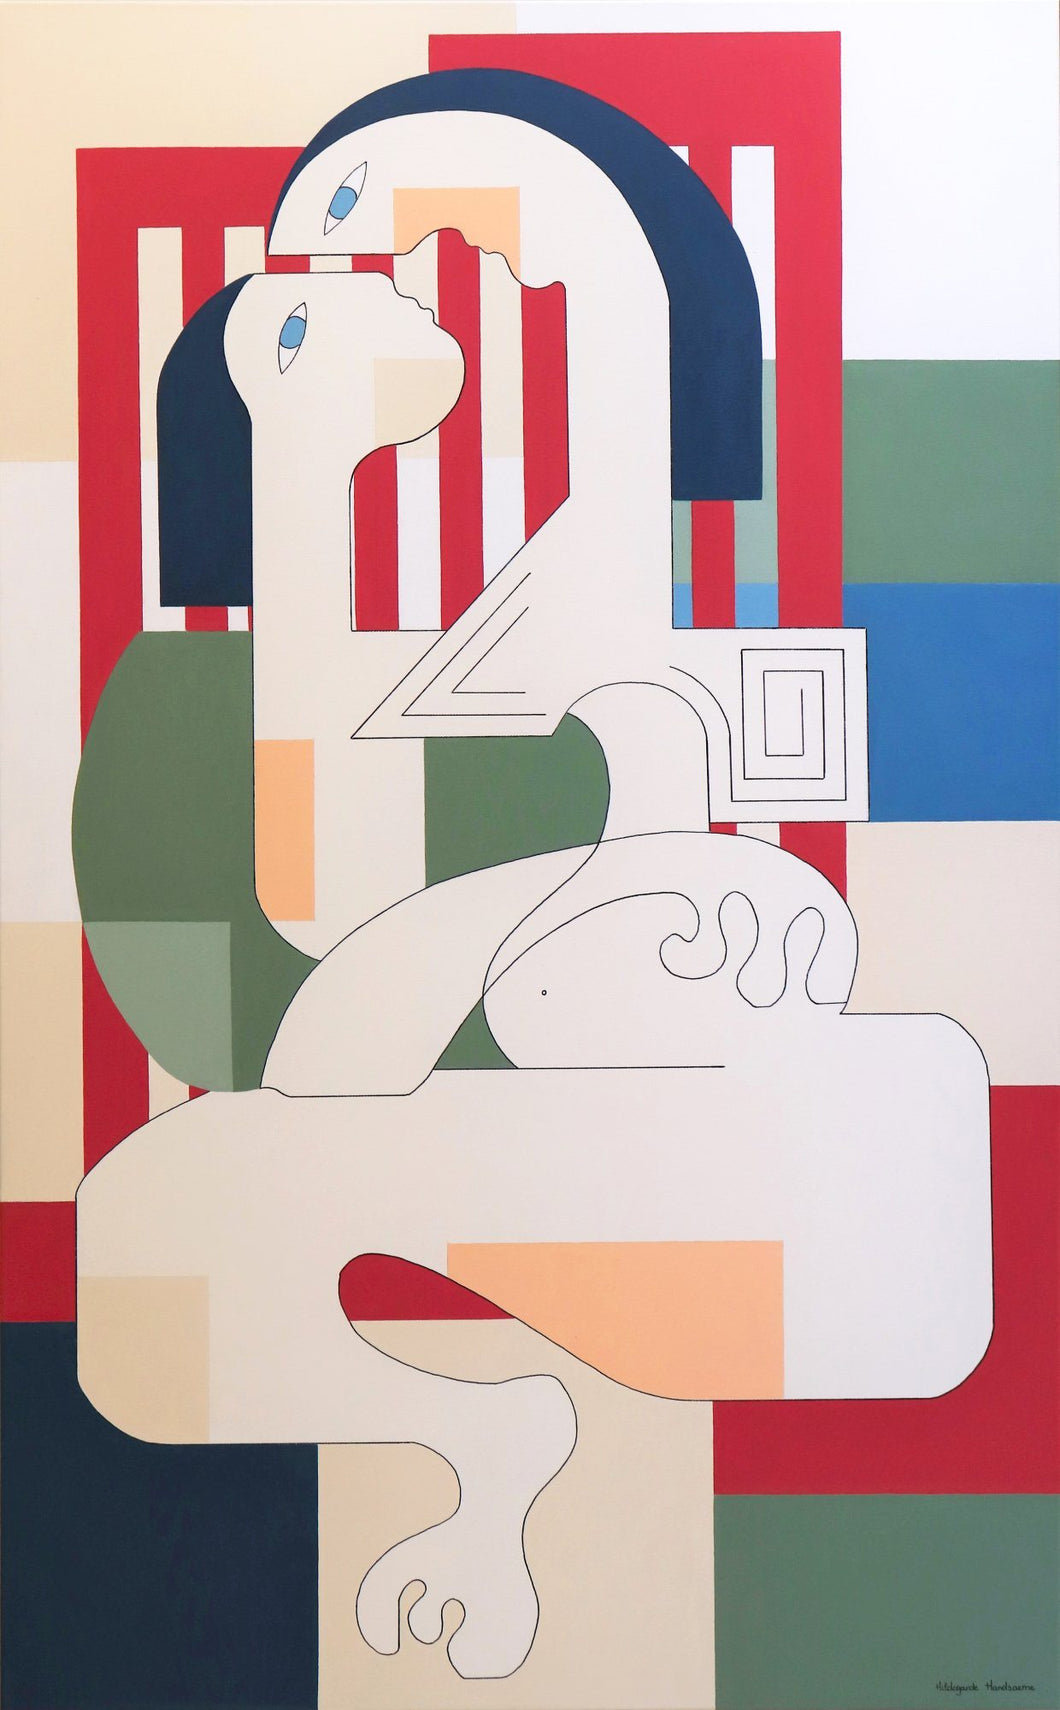 Amourette by Hildegarde Handsaeme, Painting at Art Acacia Gallery & Advisory